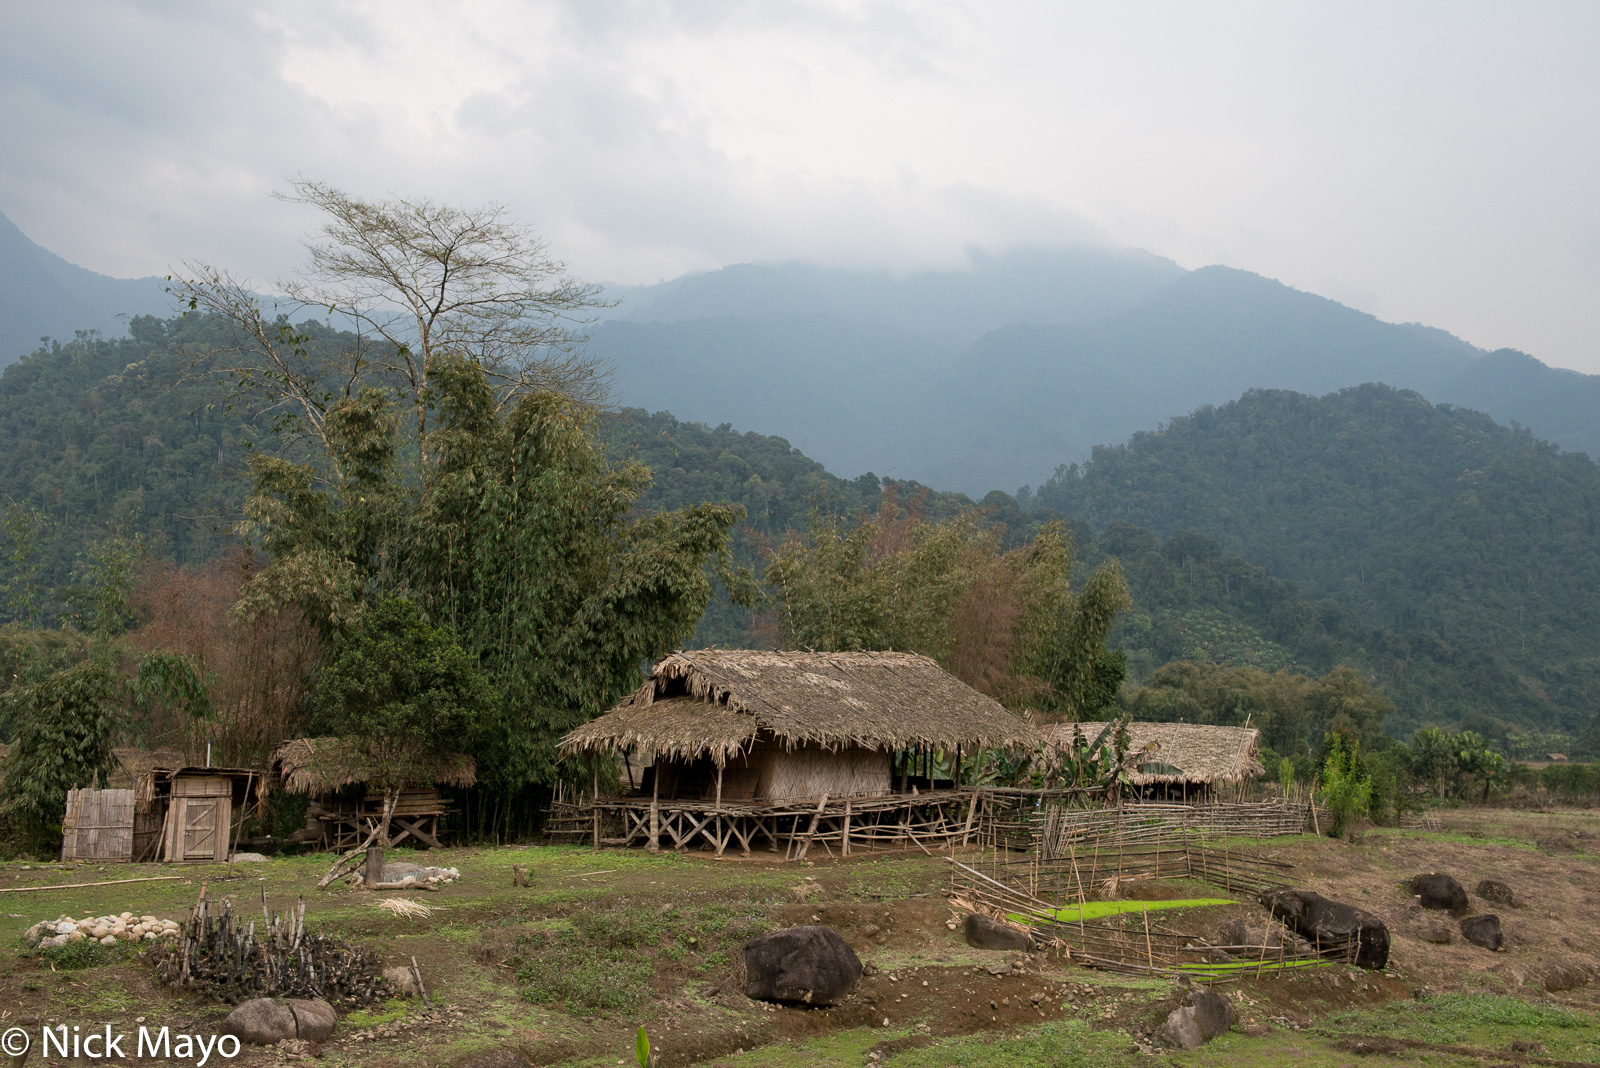 A thatched Galo house in the fields outside Kaying.